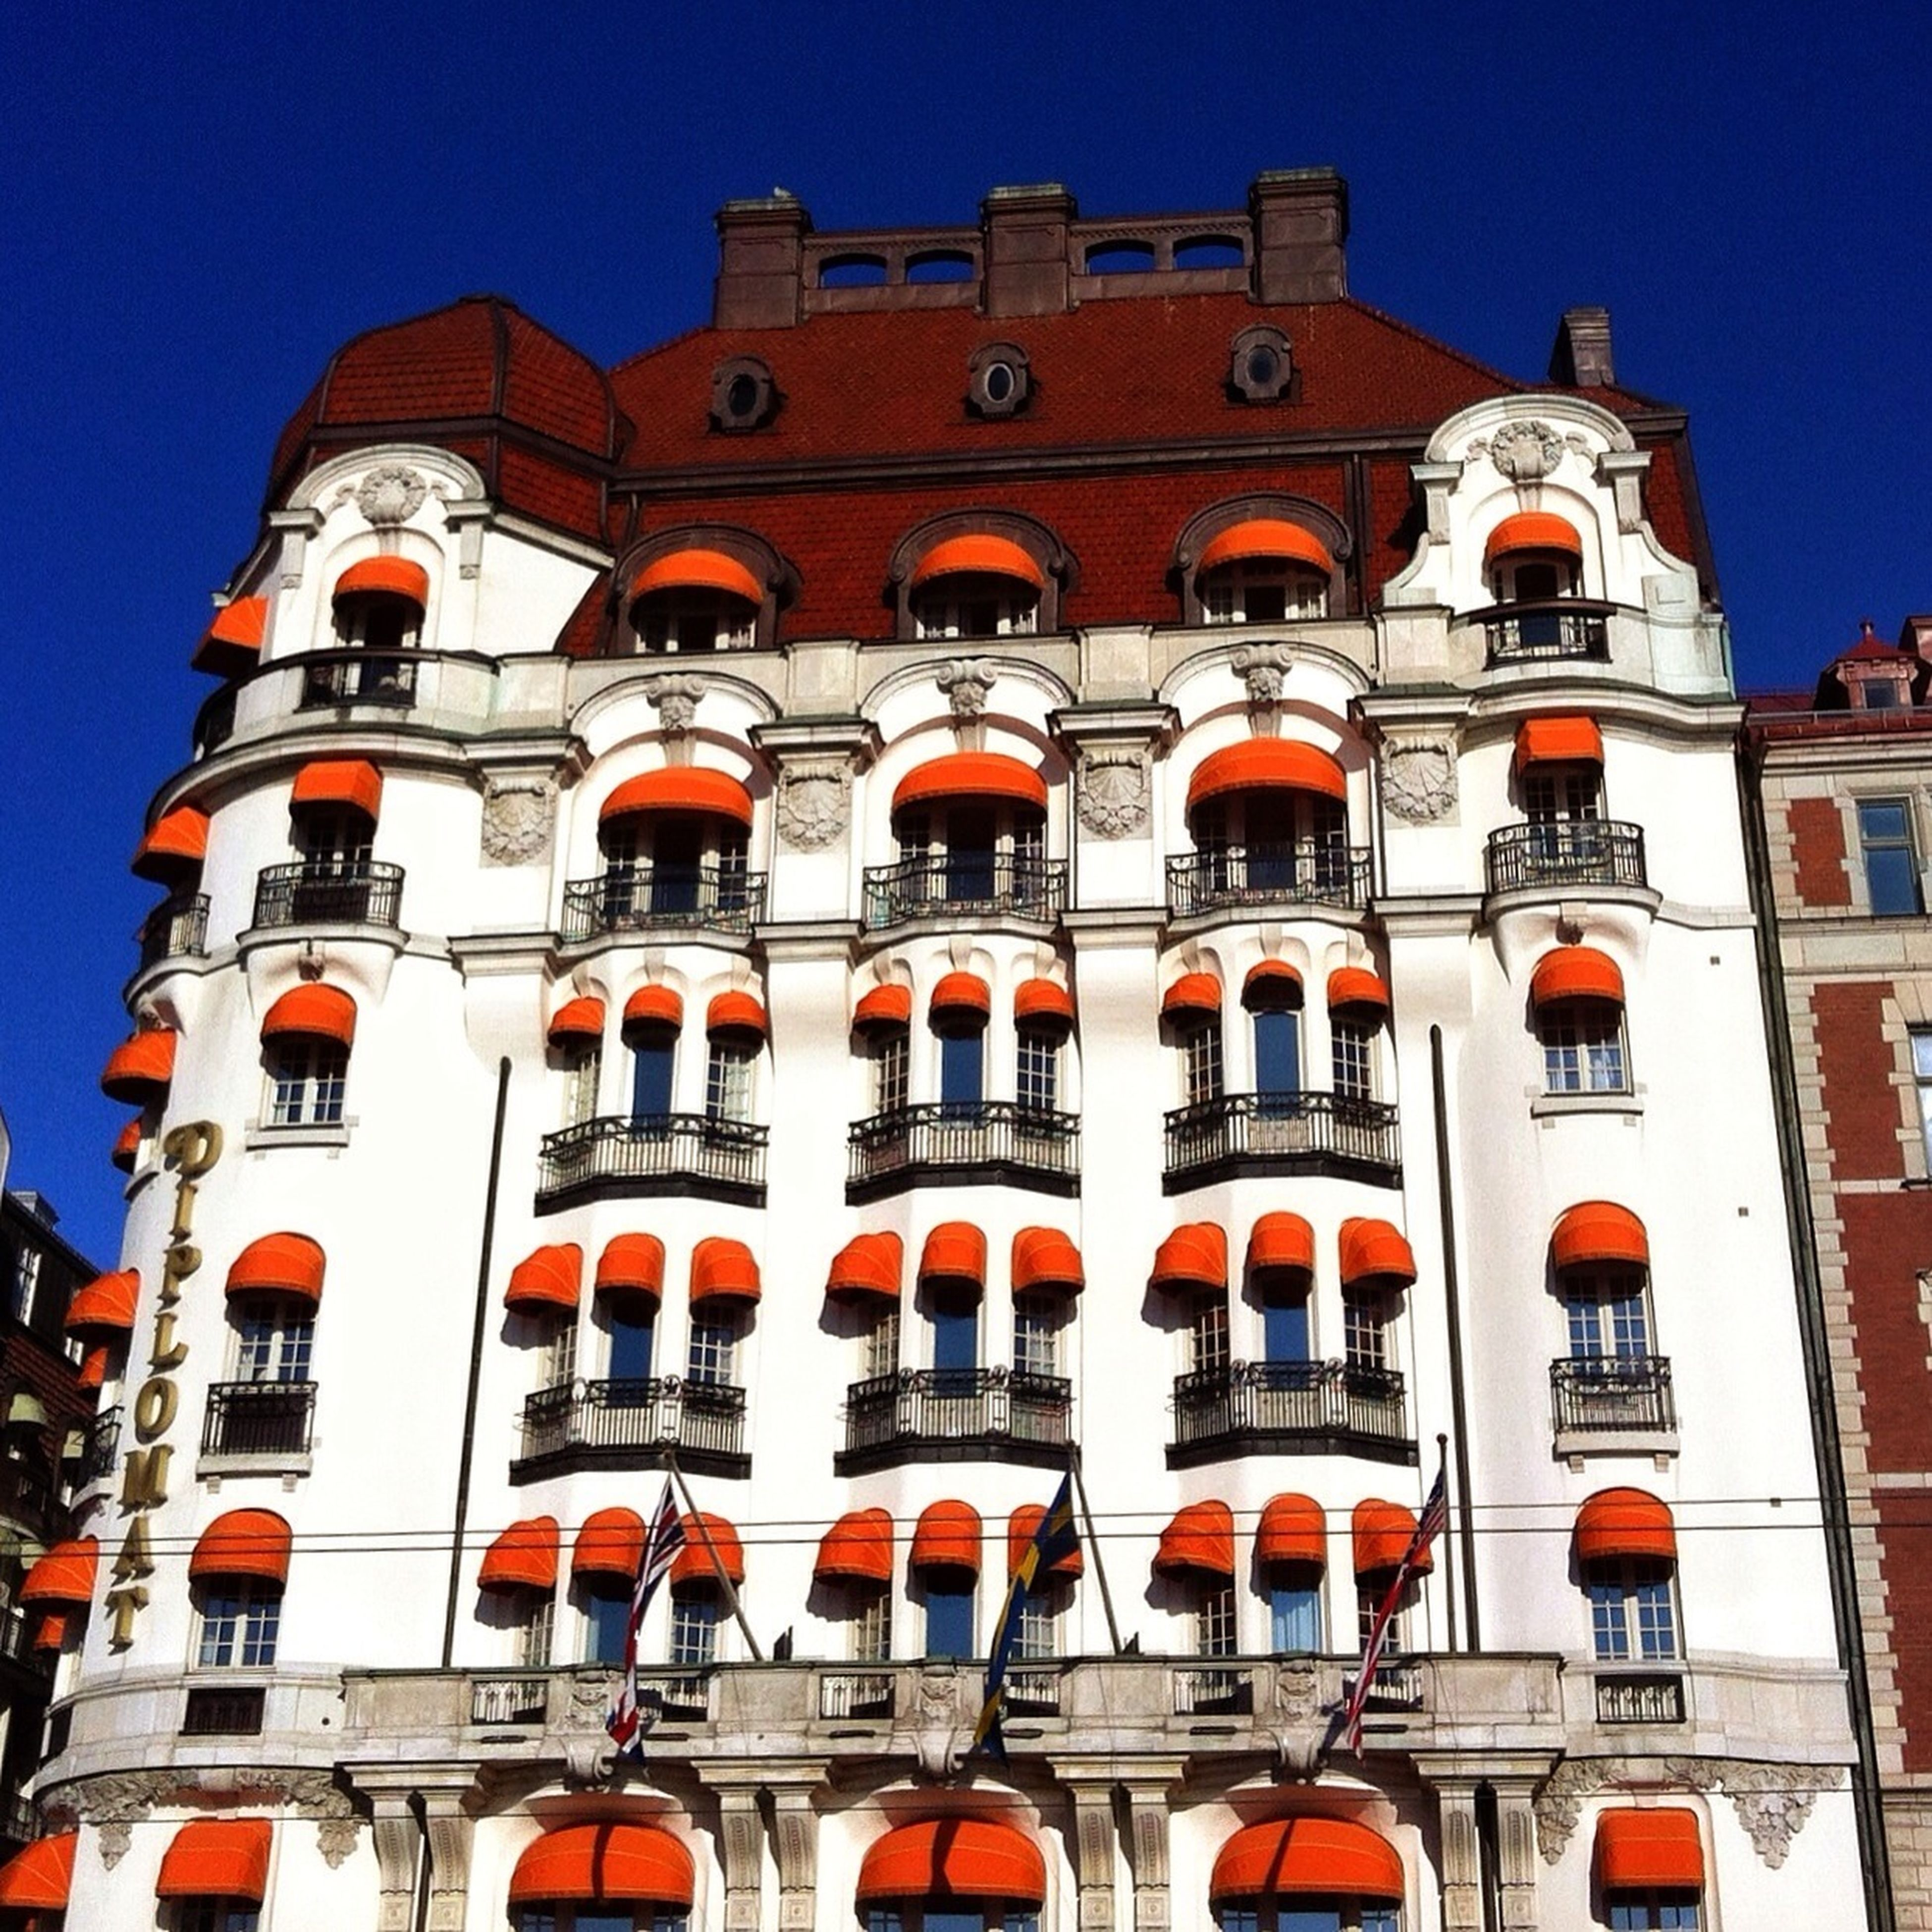 architecture, building exterior, built structure, low angle view, window, clear sky, arch, blue, facade, building, sunlight, outdoors, day, exterior, residential building, residential structure, no people, history, city, balcony